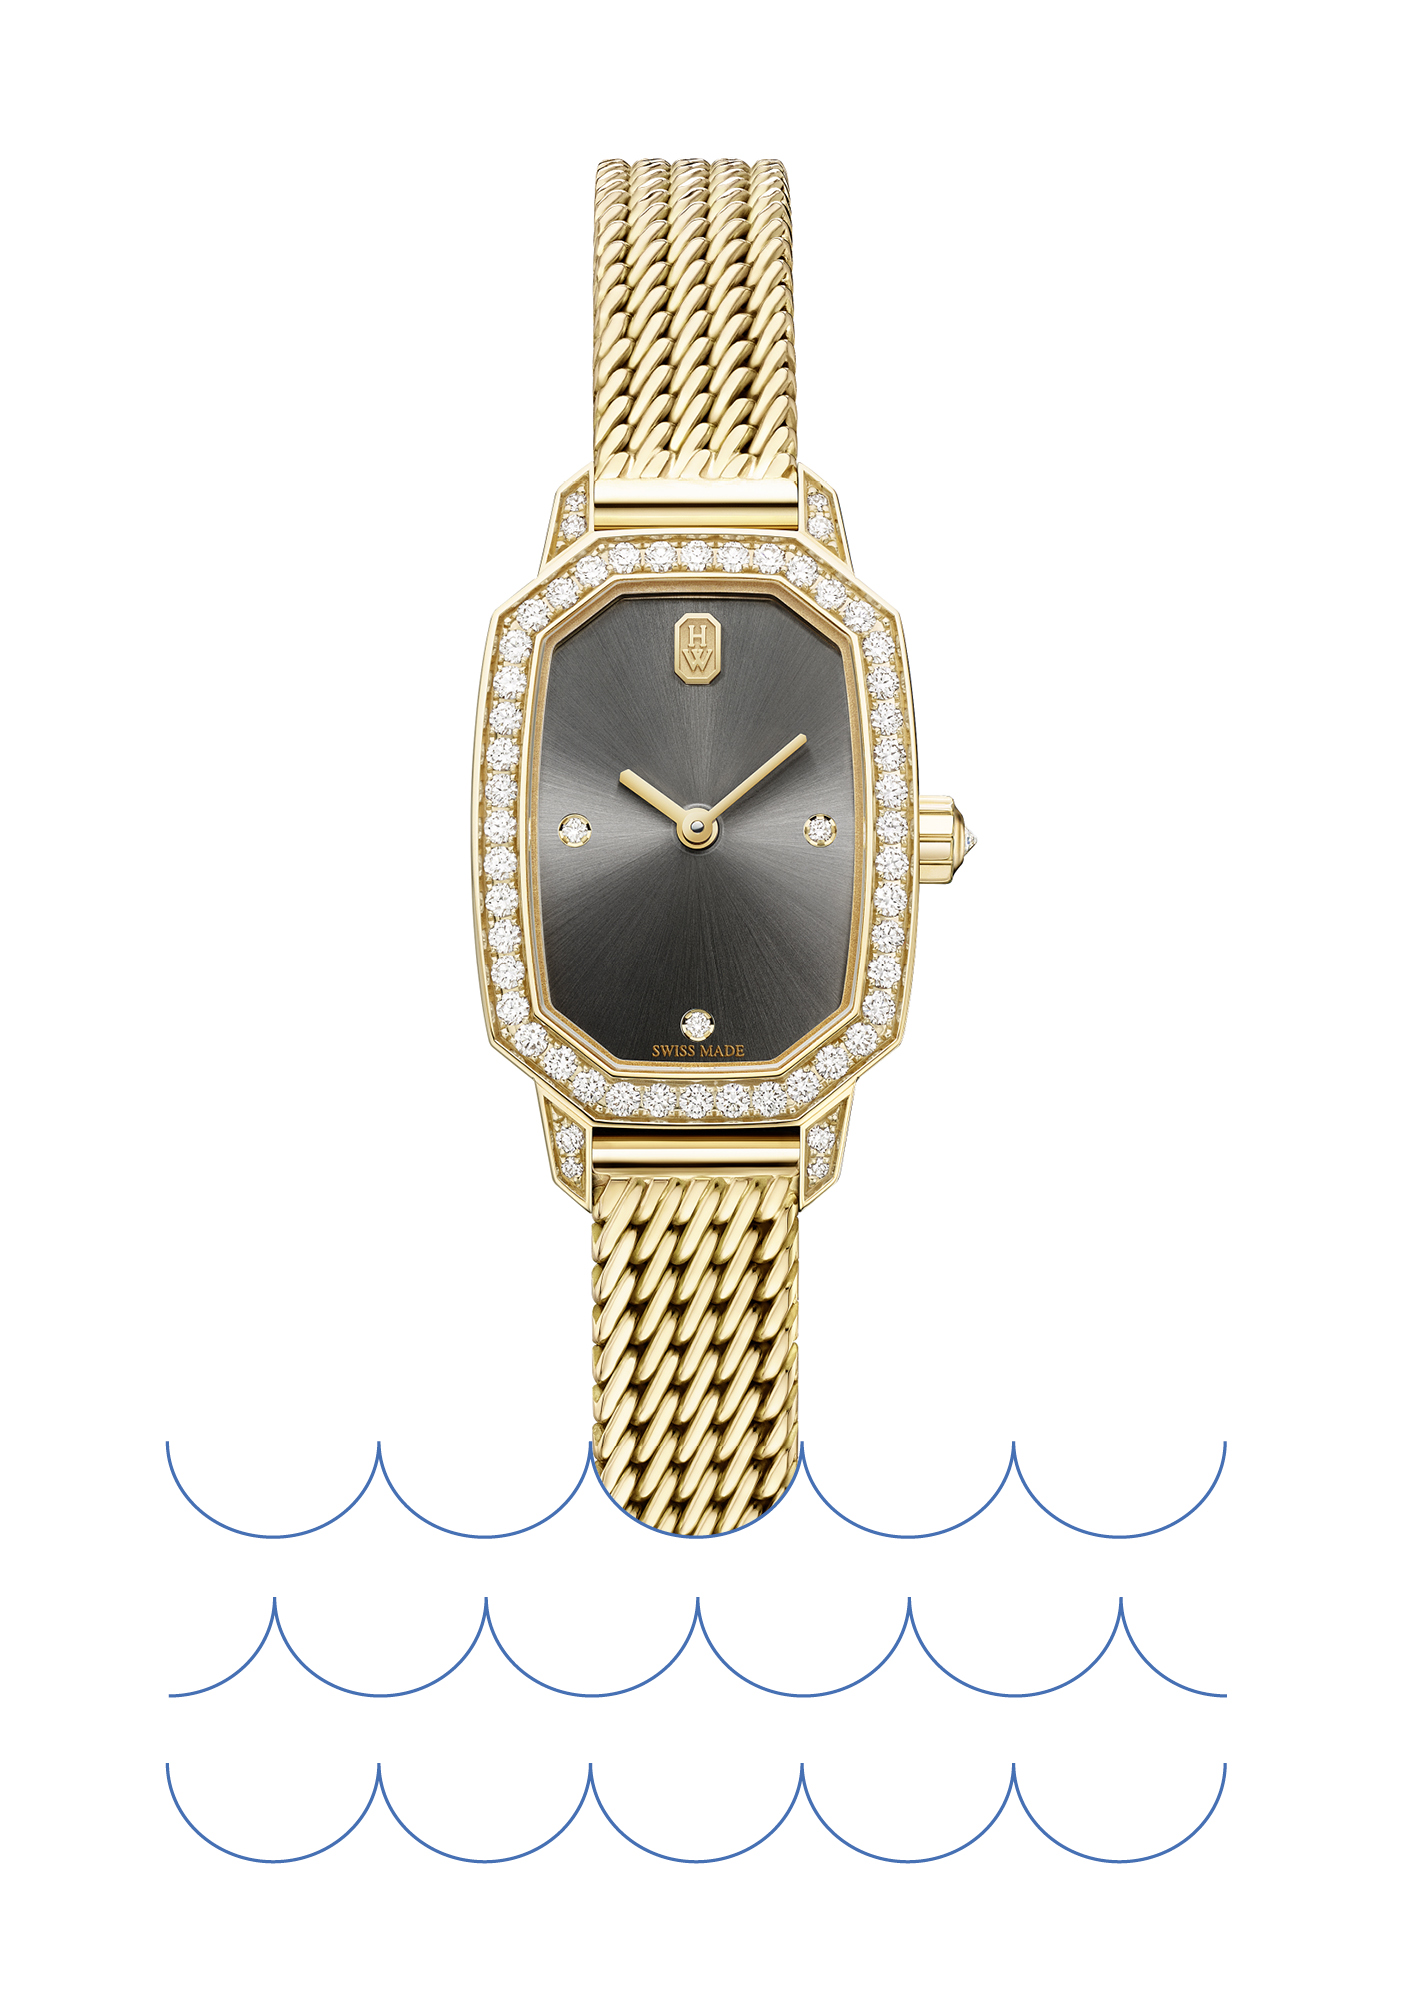 Emerald Collection watch in 18ct yellow gold